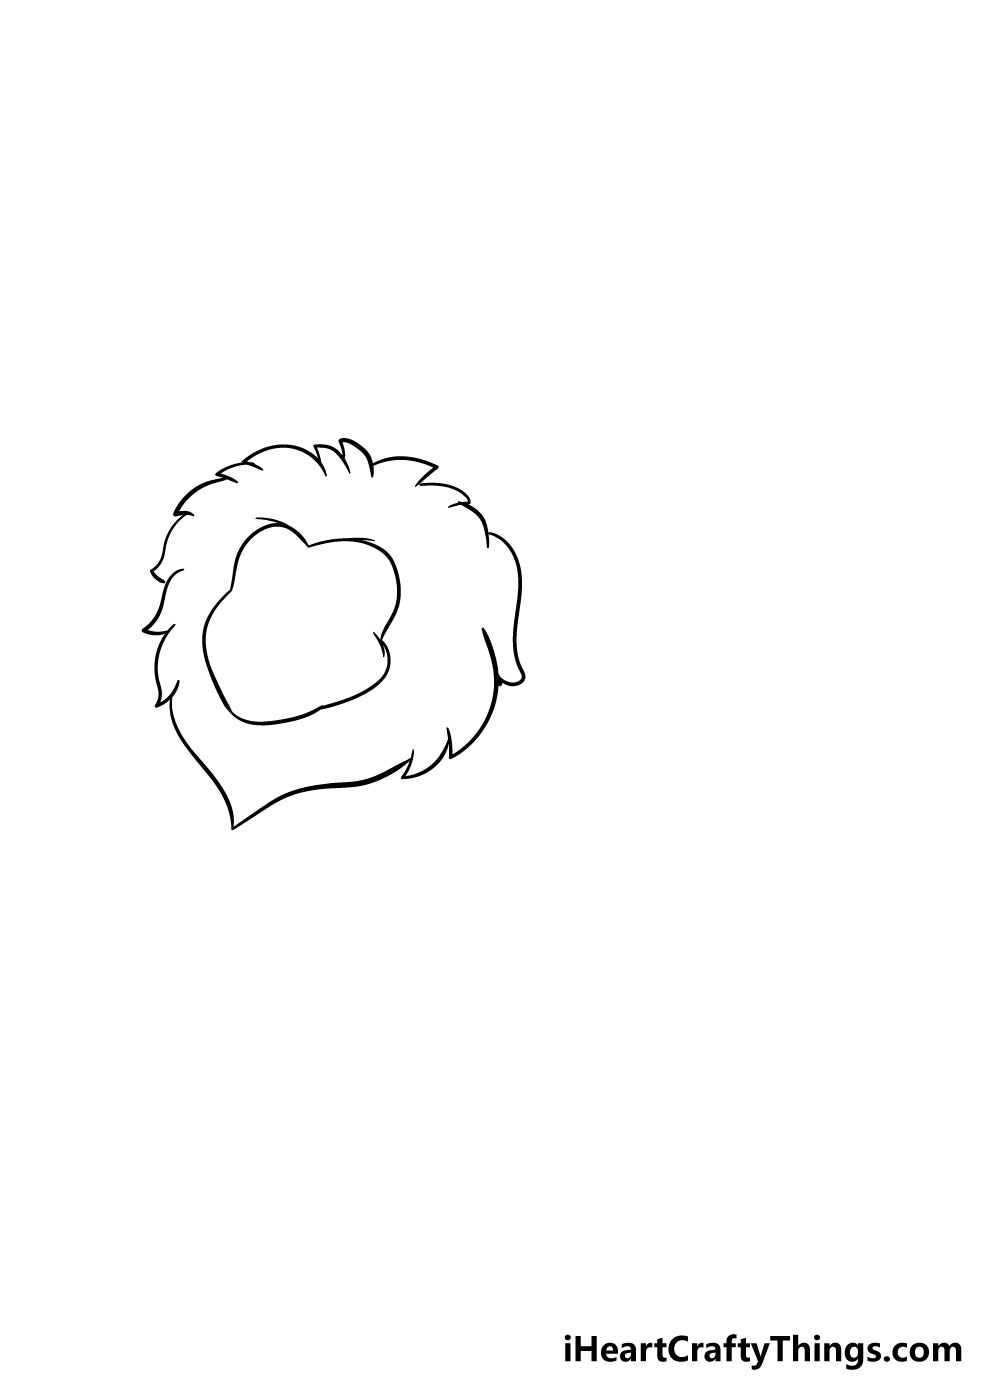 lion drawing step 2